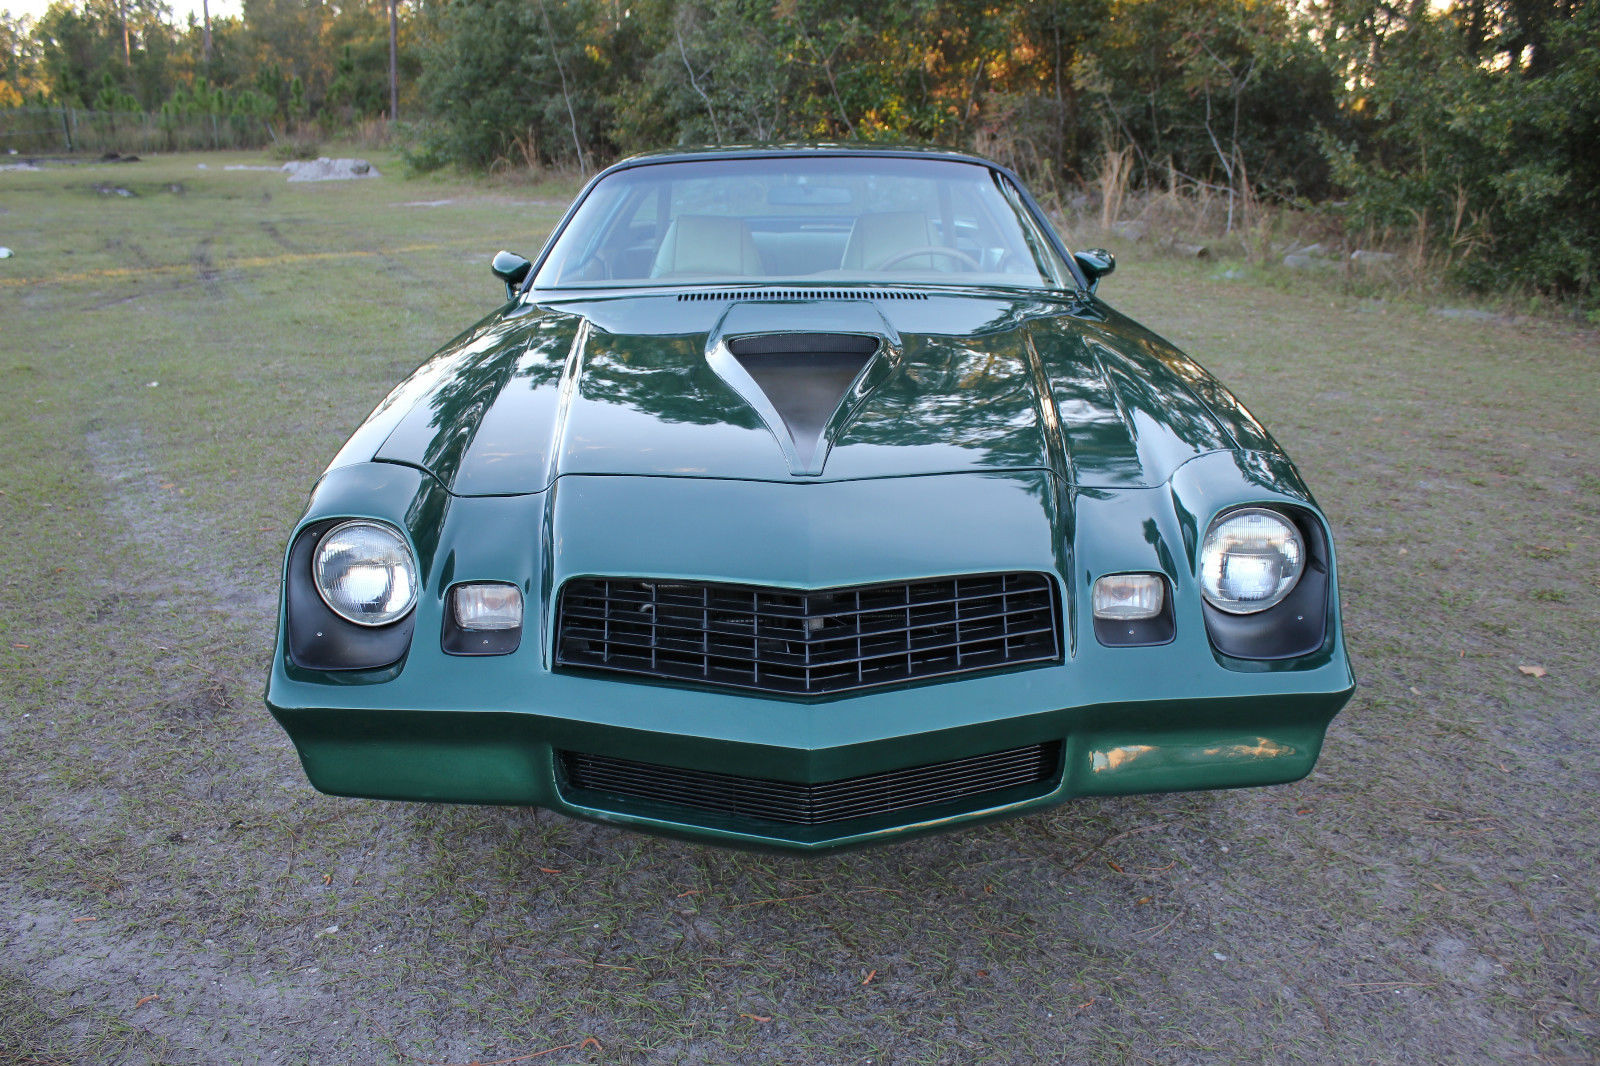 1978 Chevrolet Camaro Z28 Resto Mod Coupe 57l 425hp Must See For Rs